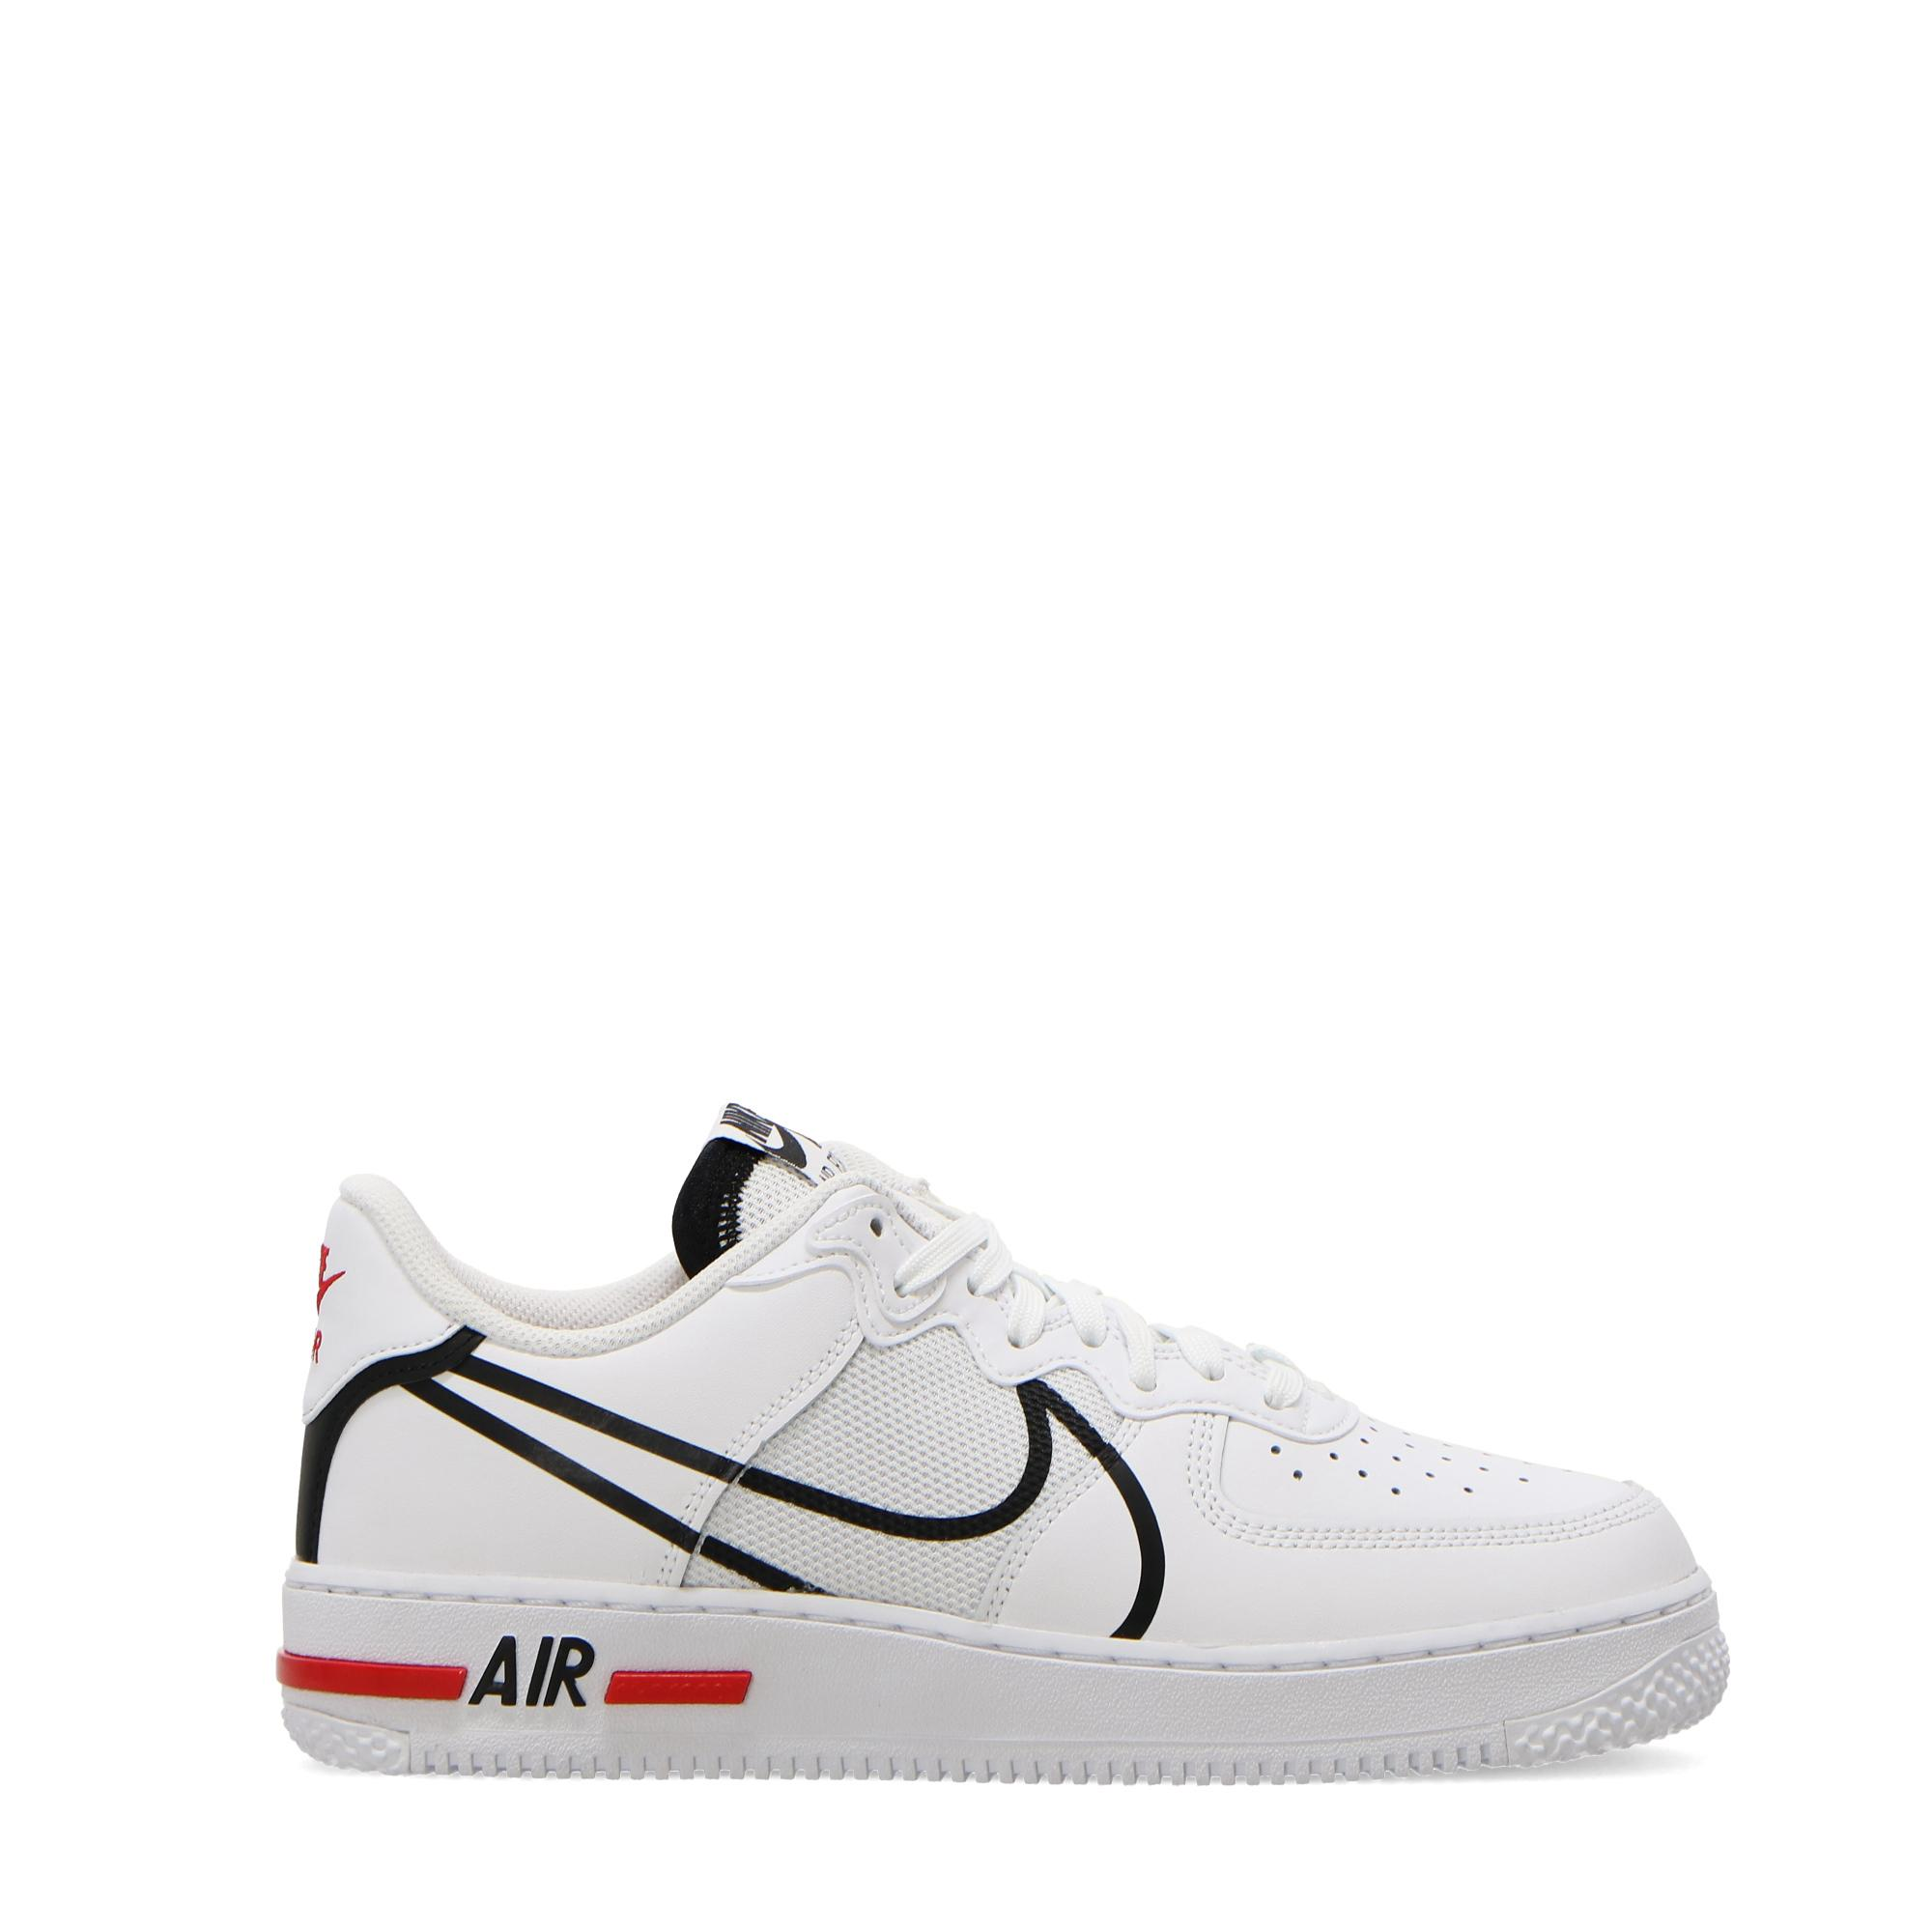 air force 1 uomo react